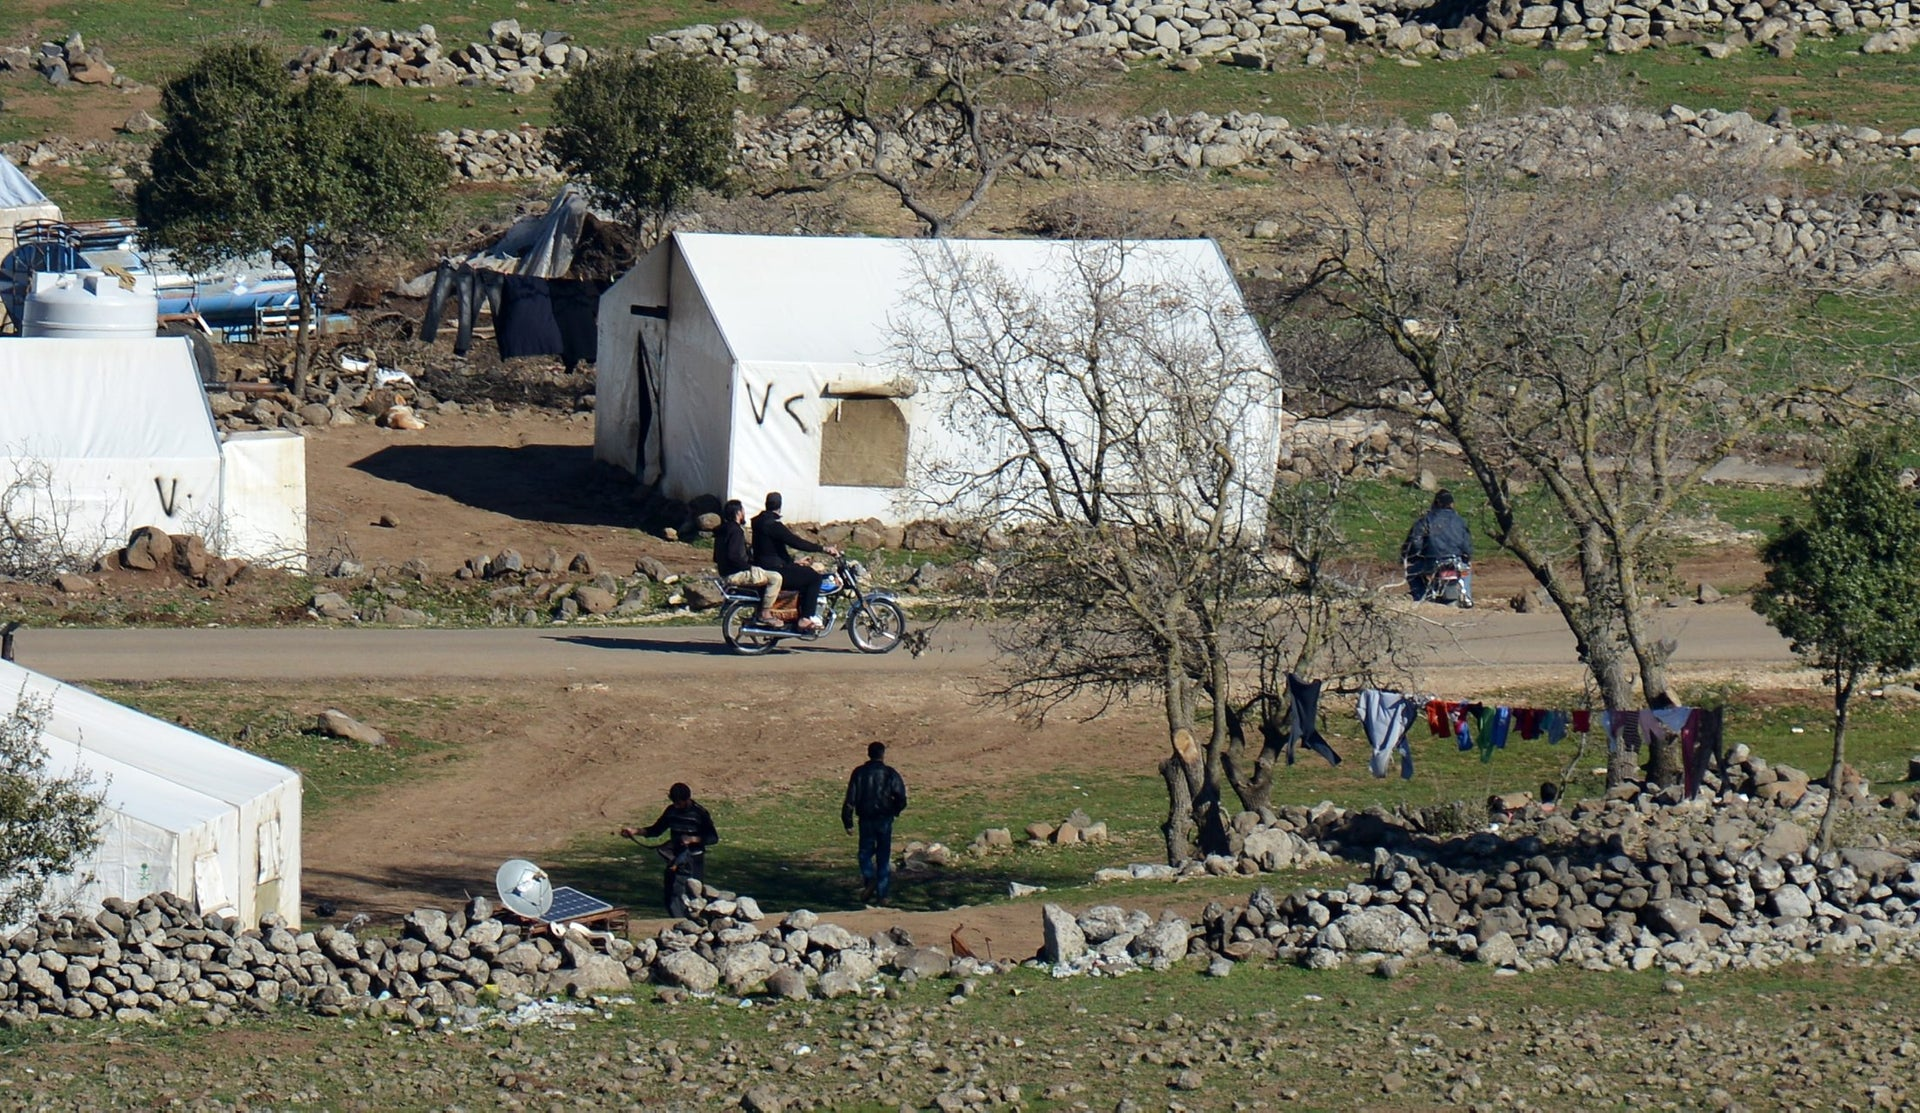 Syrian refugee camp near the border fence between Syria and Israel on the Golan Heights, February 17, 2016.